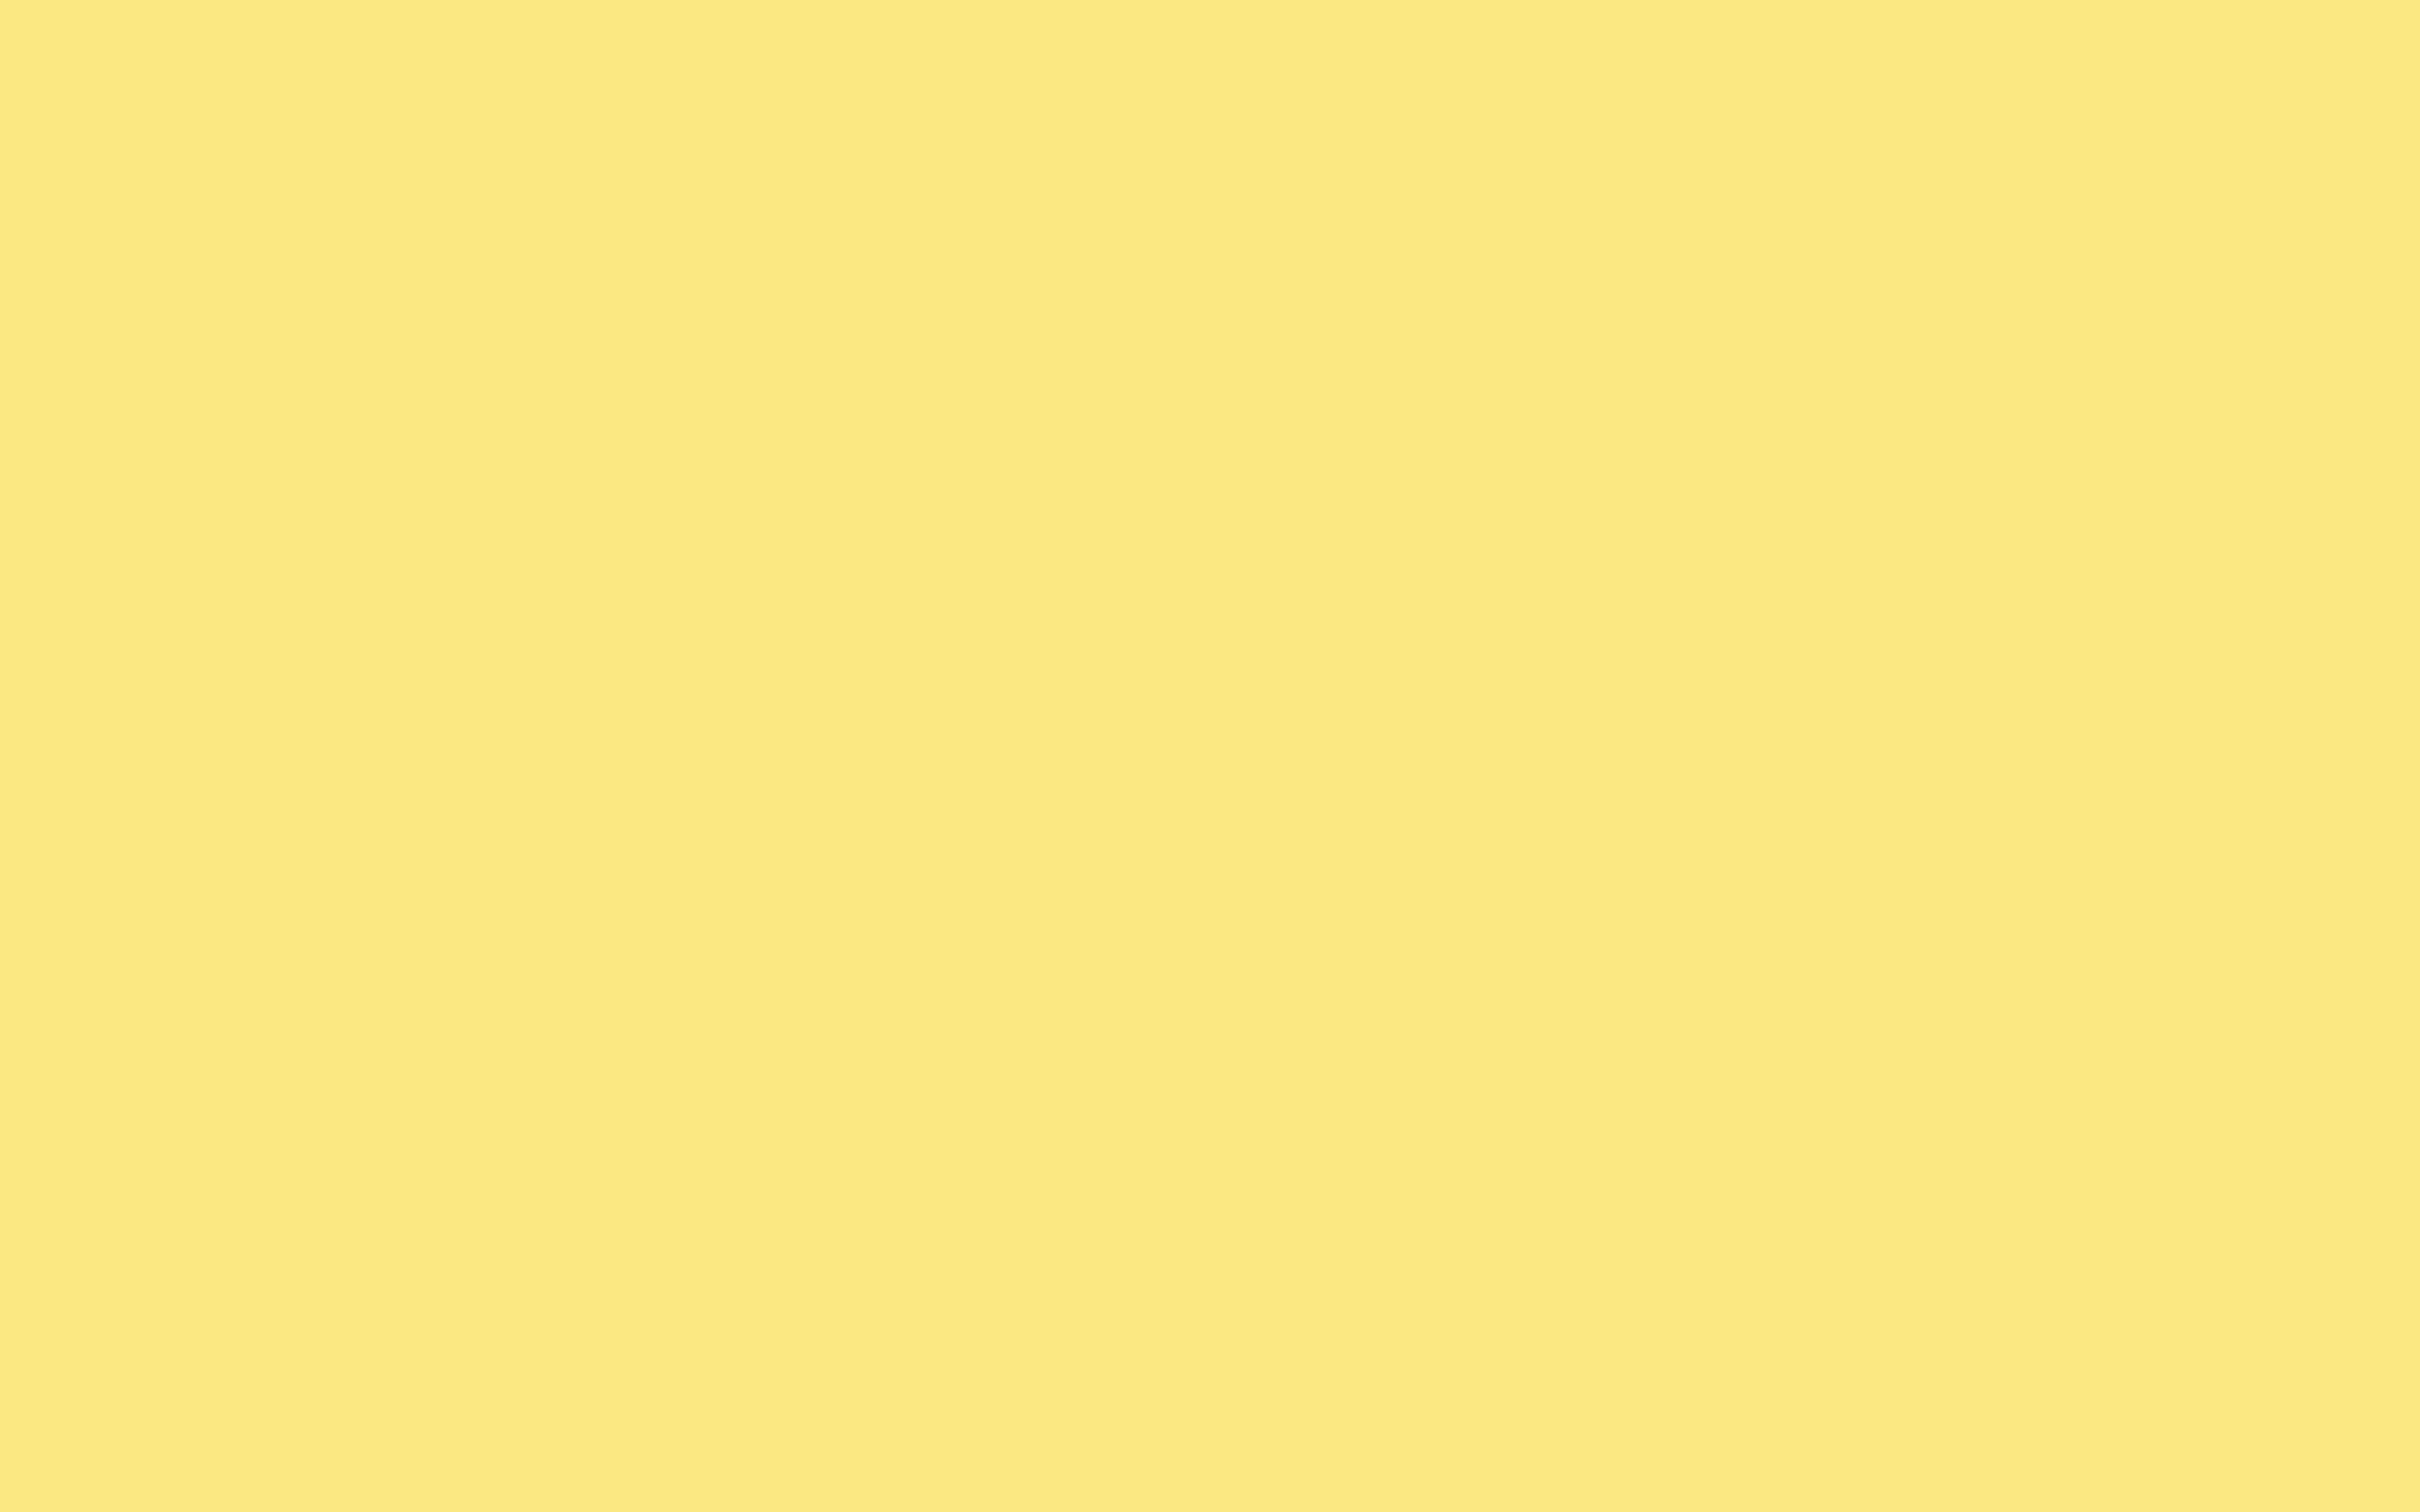 2880x1800 Yellow Crayola Solid Color Background